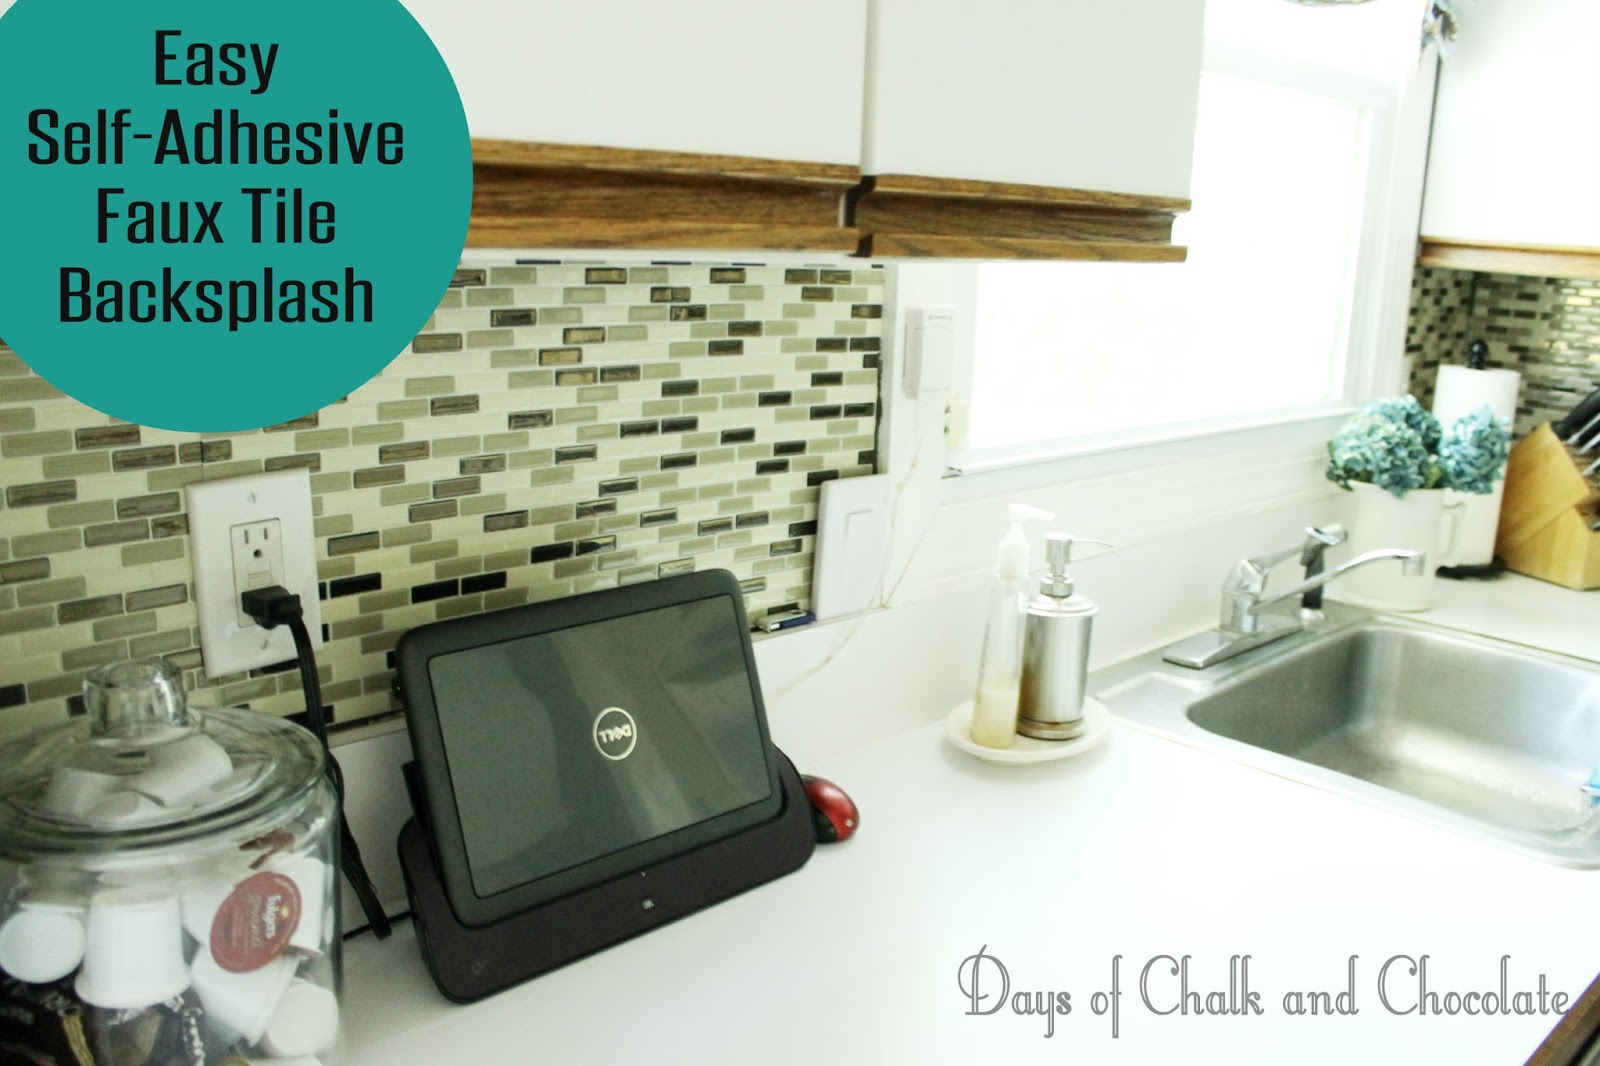 Easy DIY Self-Adhesive Faux Tile Backsplash